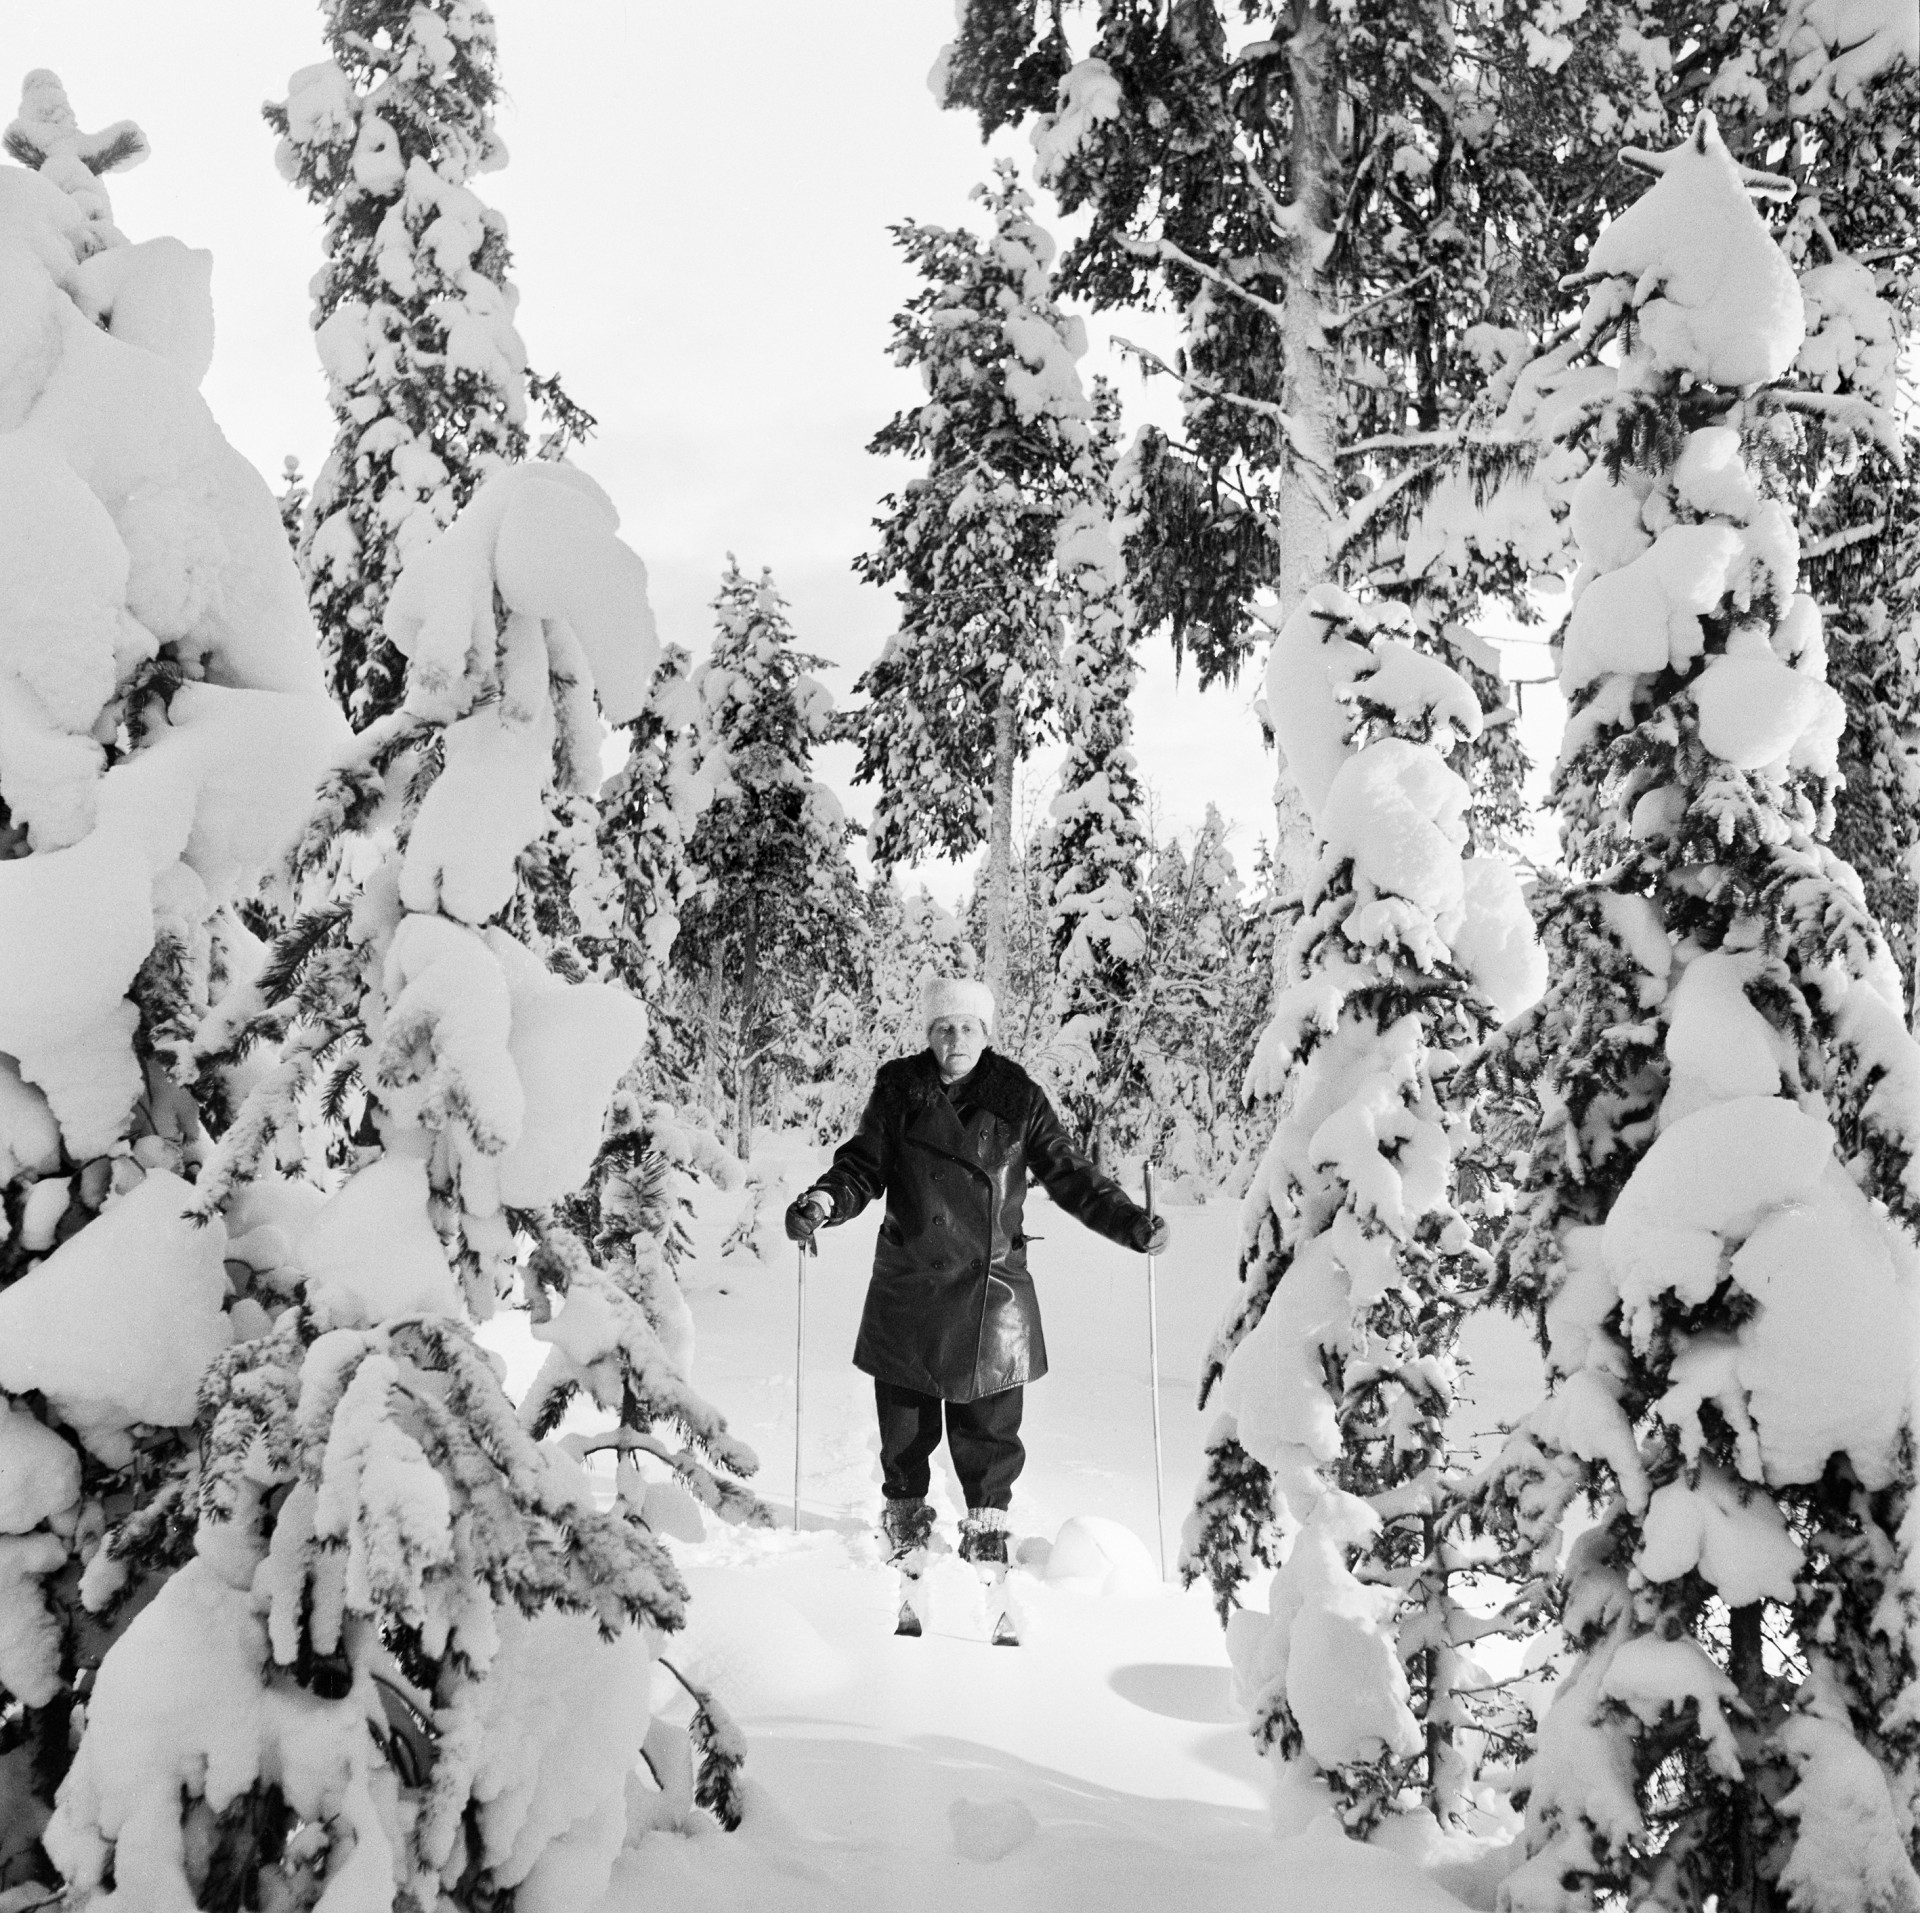 A midwife in Lapland skis to her destination. 1950. Photo: KW Gullers/Nordiska museet